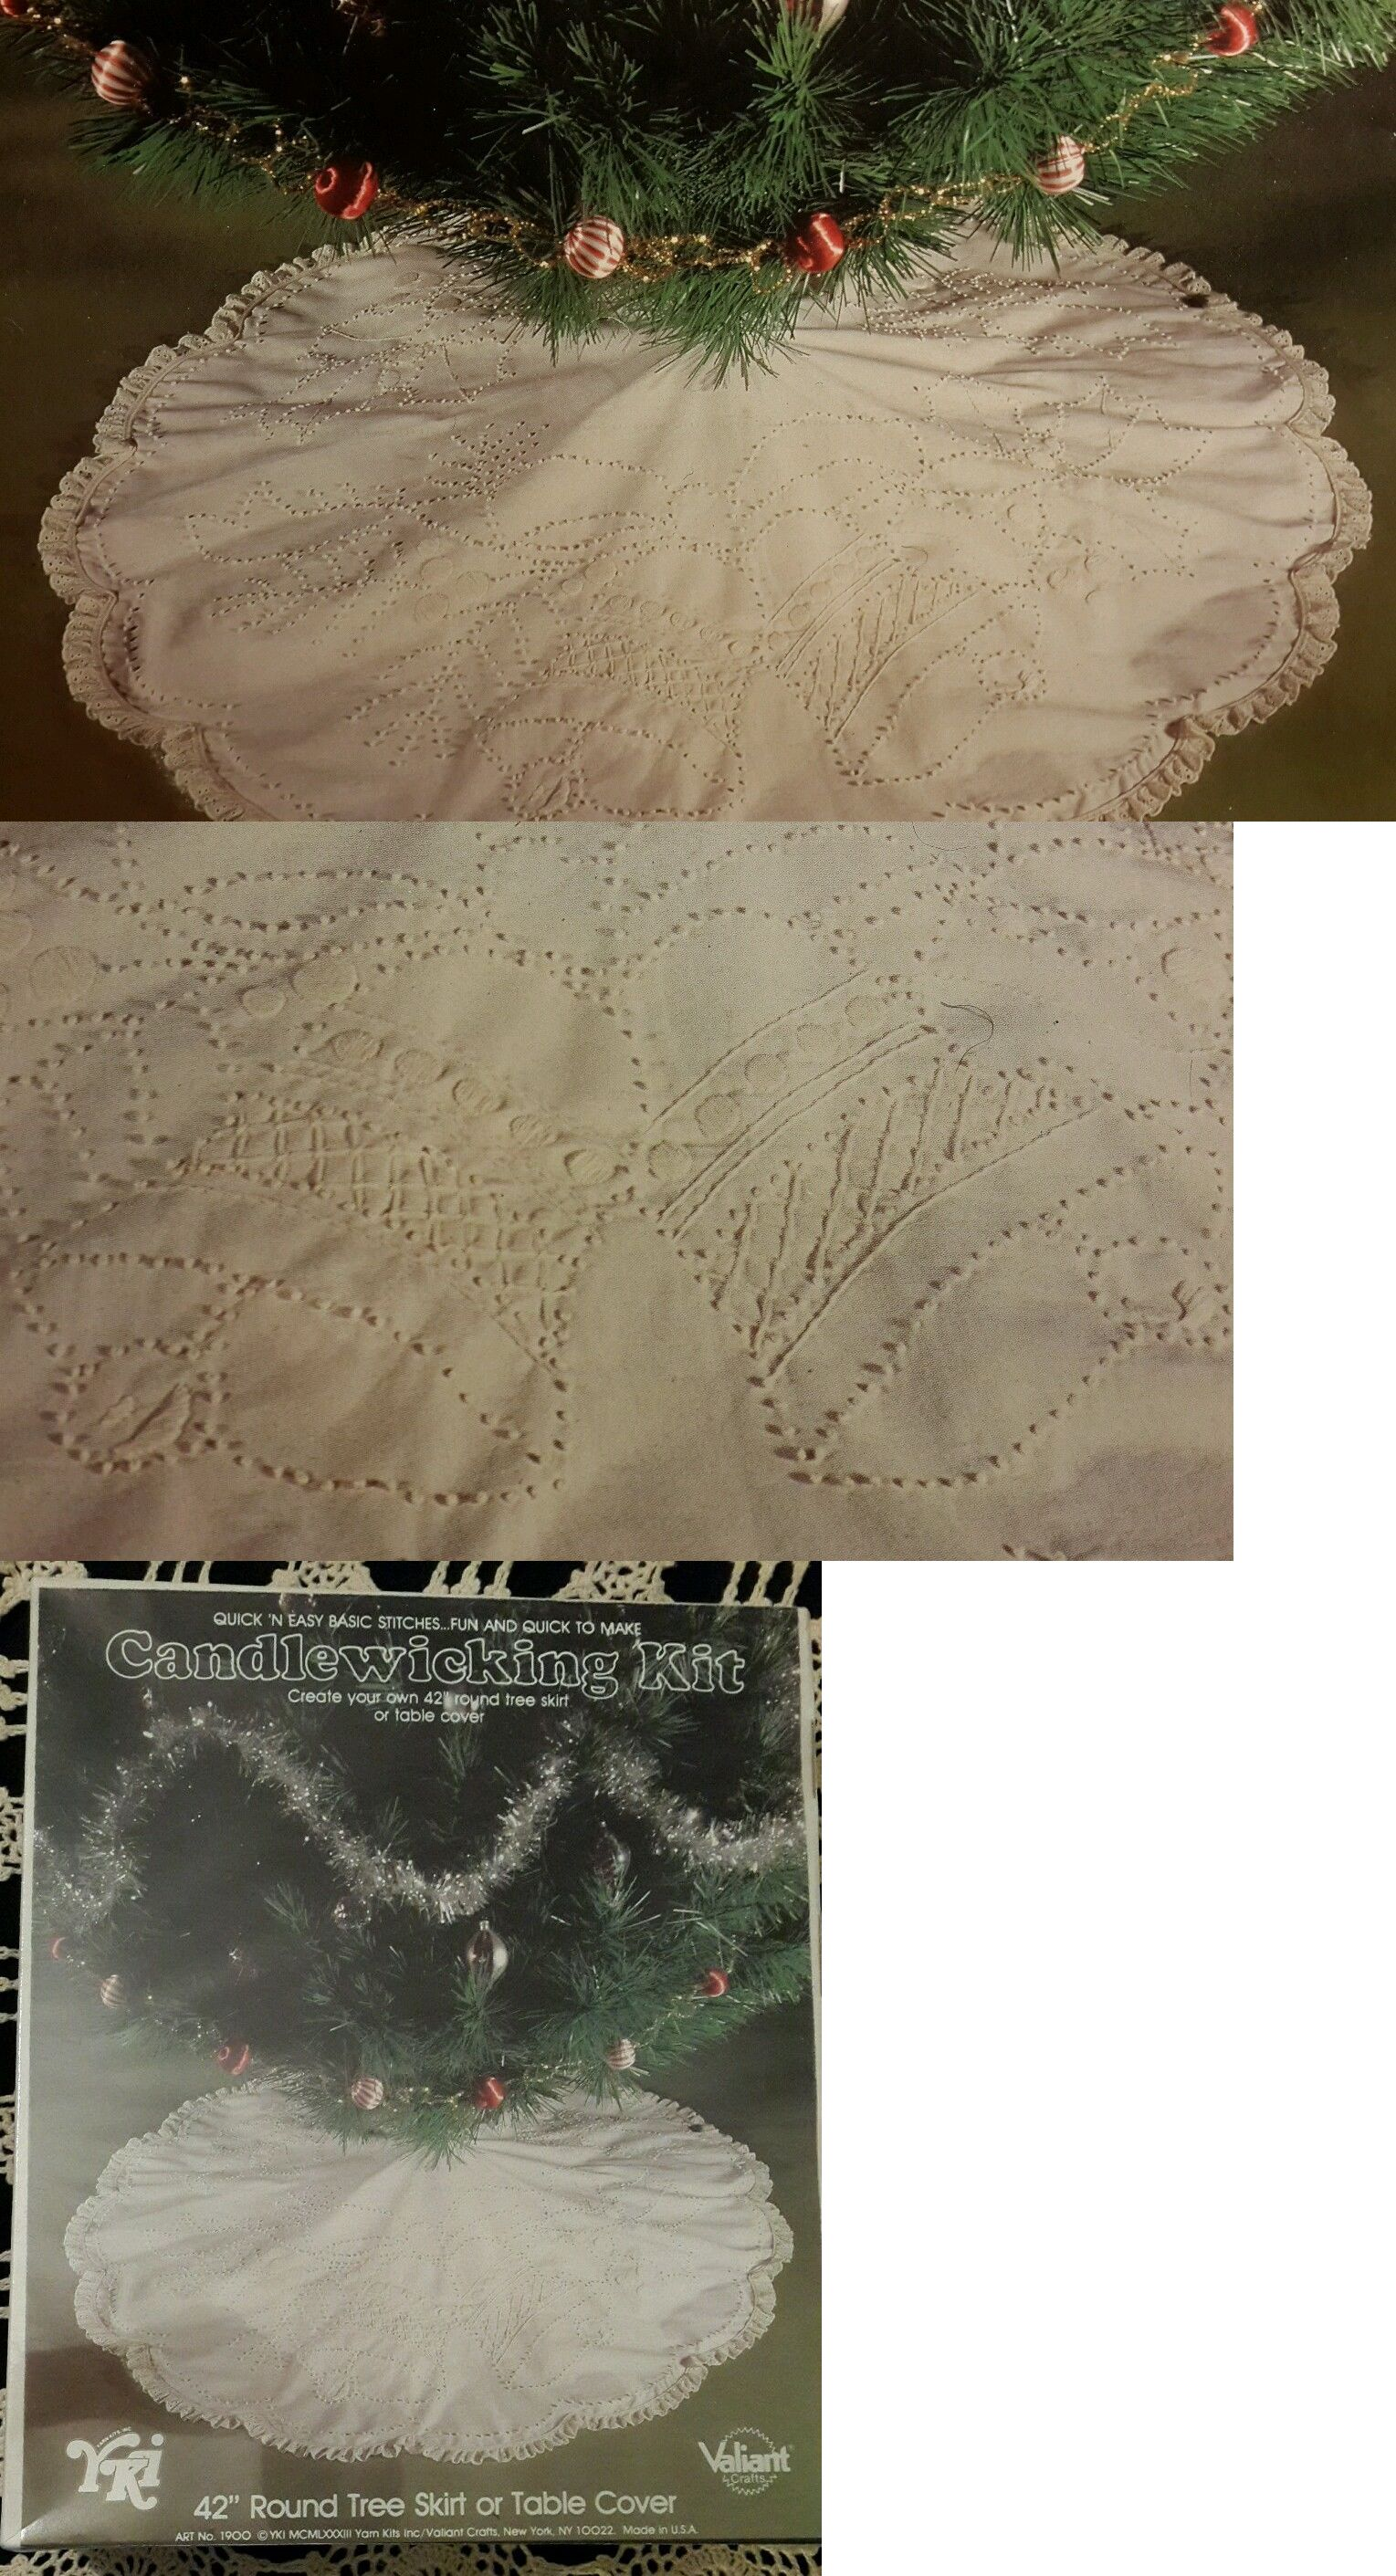 Full Size of Pillowcase:how To Machine Embroider A Pillowcase Hand  Embroidery Patterns For Tablecloth ...